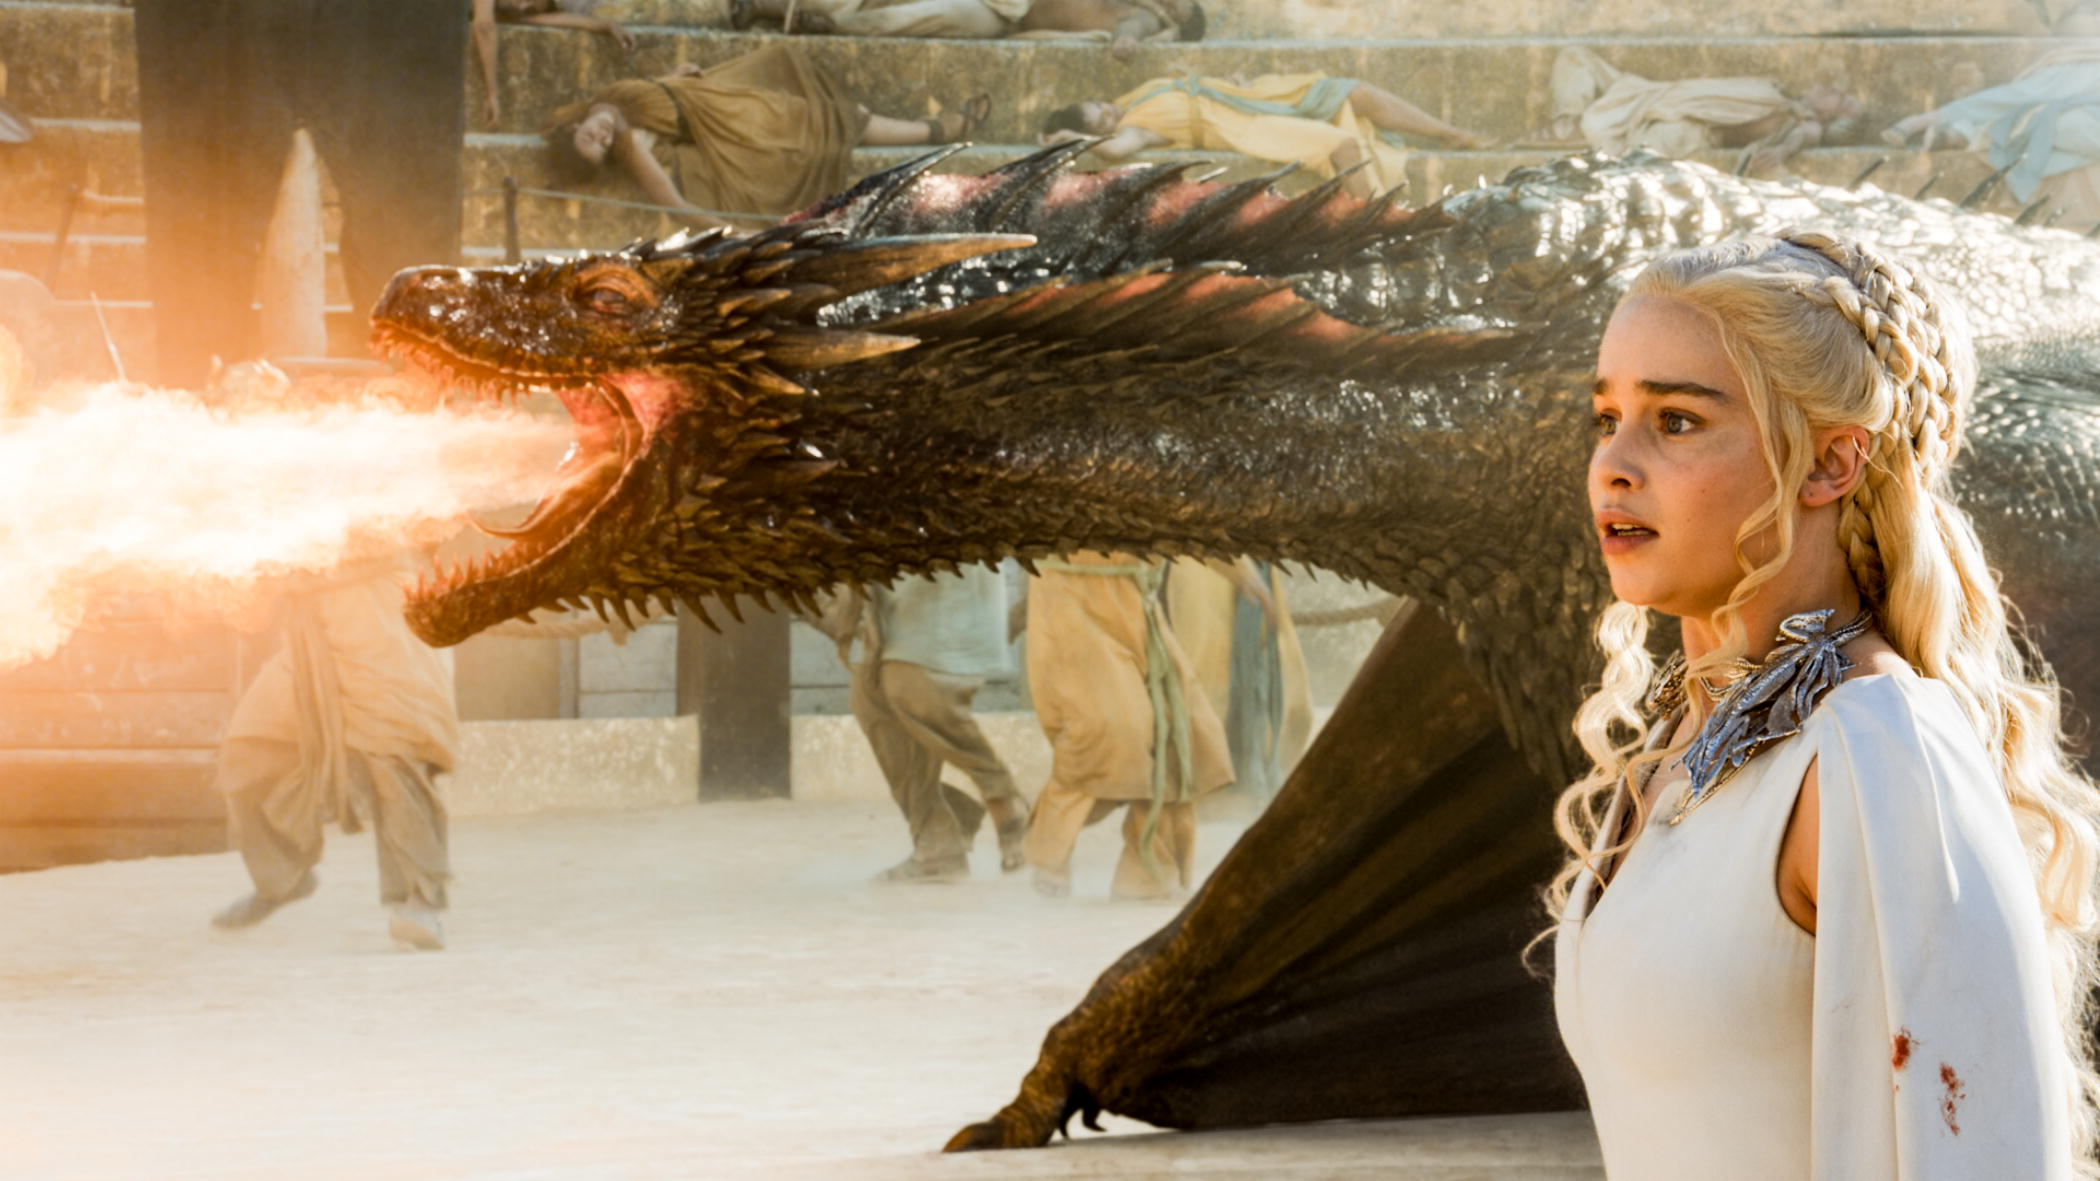 game-of-thrones-season-5-the-dance-of-dragons